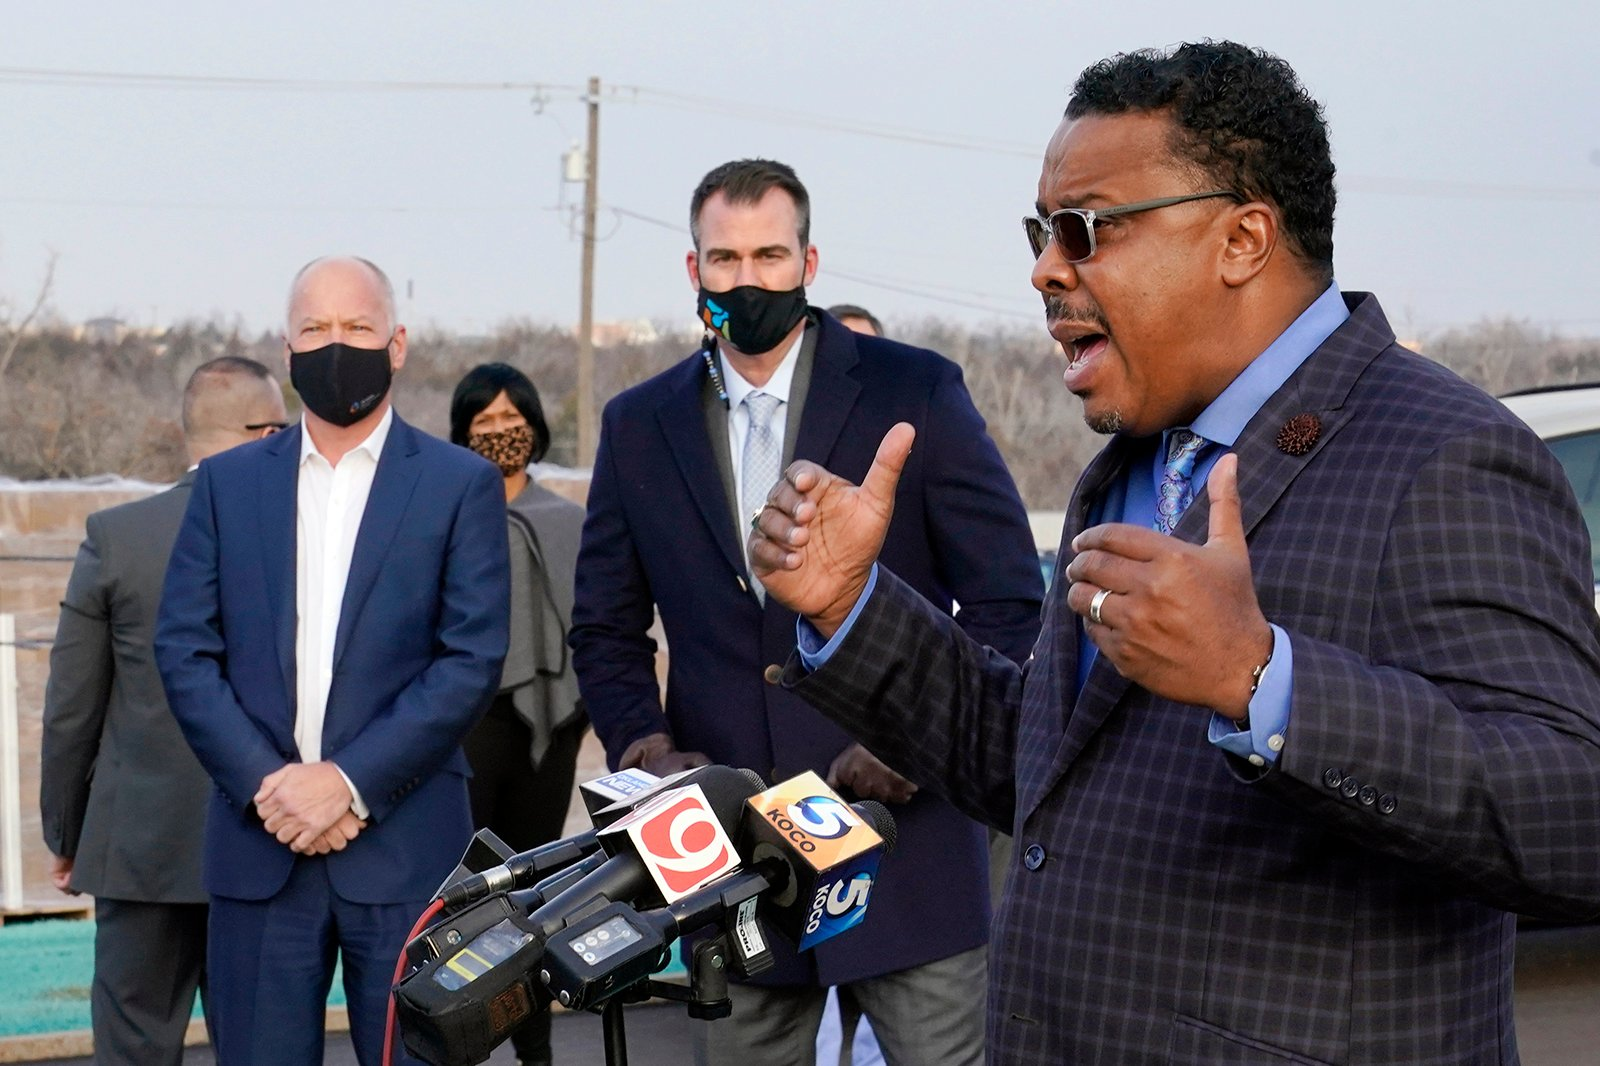 The Rev. Derrick Scobey, right, Ebenezer Baptist Church Senior Pastor, talks with the media as Oklahoma Gov. Kevin Stitt, center, and Dr. Lance Frye, left, State Commissioner of Health, look on, Tuesday, Jan. 26, 2021, in Oklahoma City. Scobey helped to organize the event in an effort to encourage more African Americans in Oklahoma City to receive the COVID-19 vaccine. (AP Photo/Sue Ogrocki)